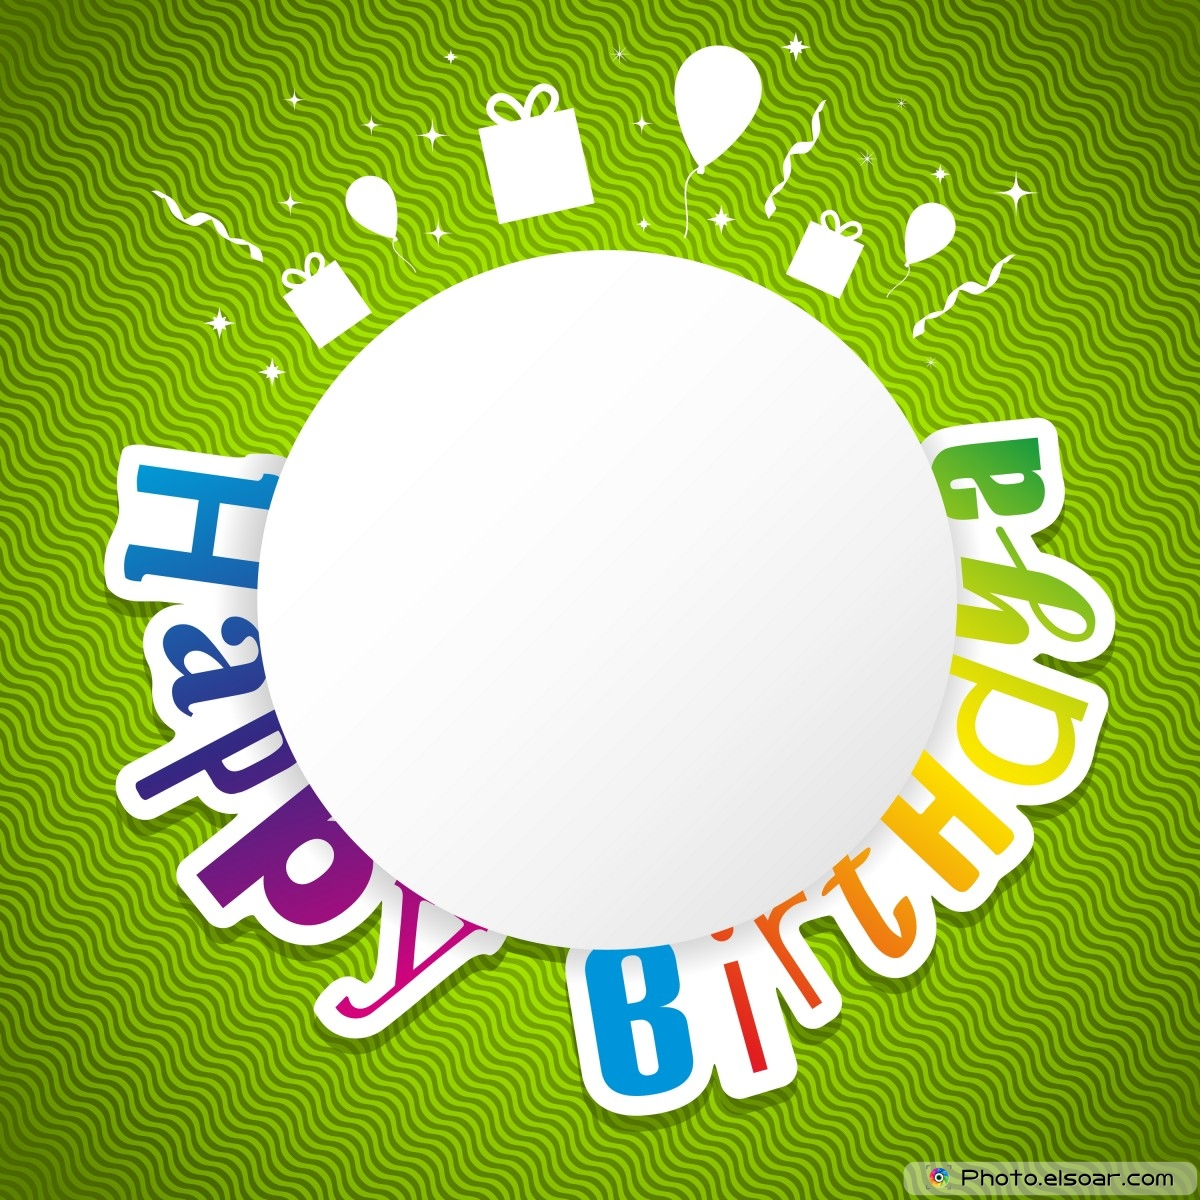 background images for birthday greetings ; happy-birthday-card-on-green-background-as-carnival-happy-new-year